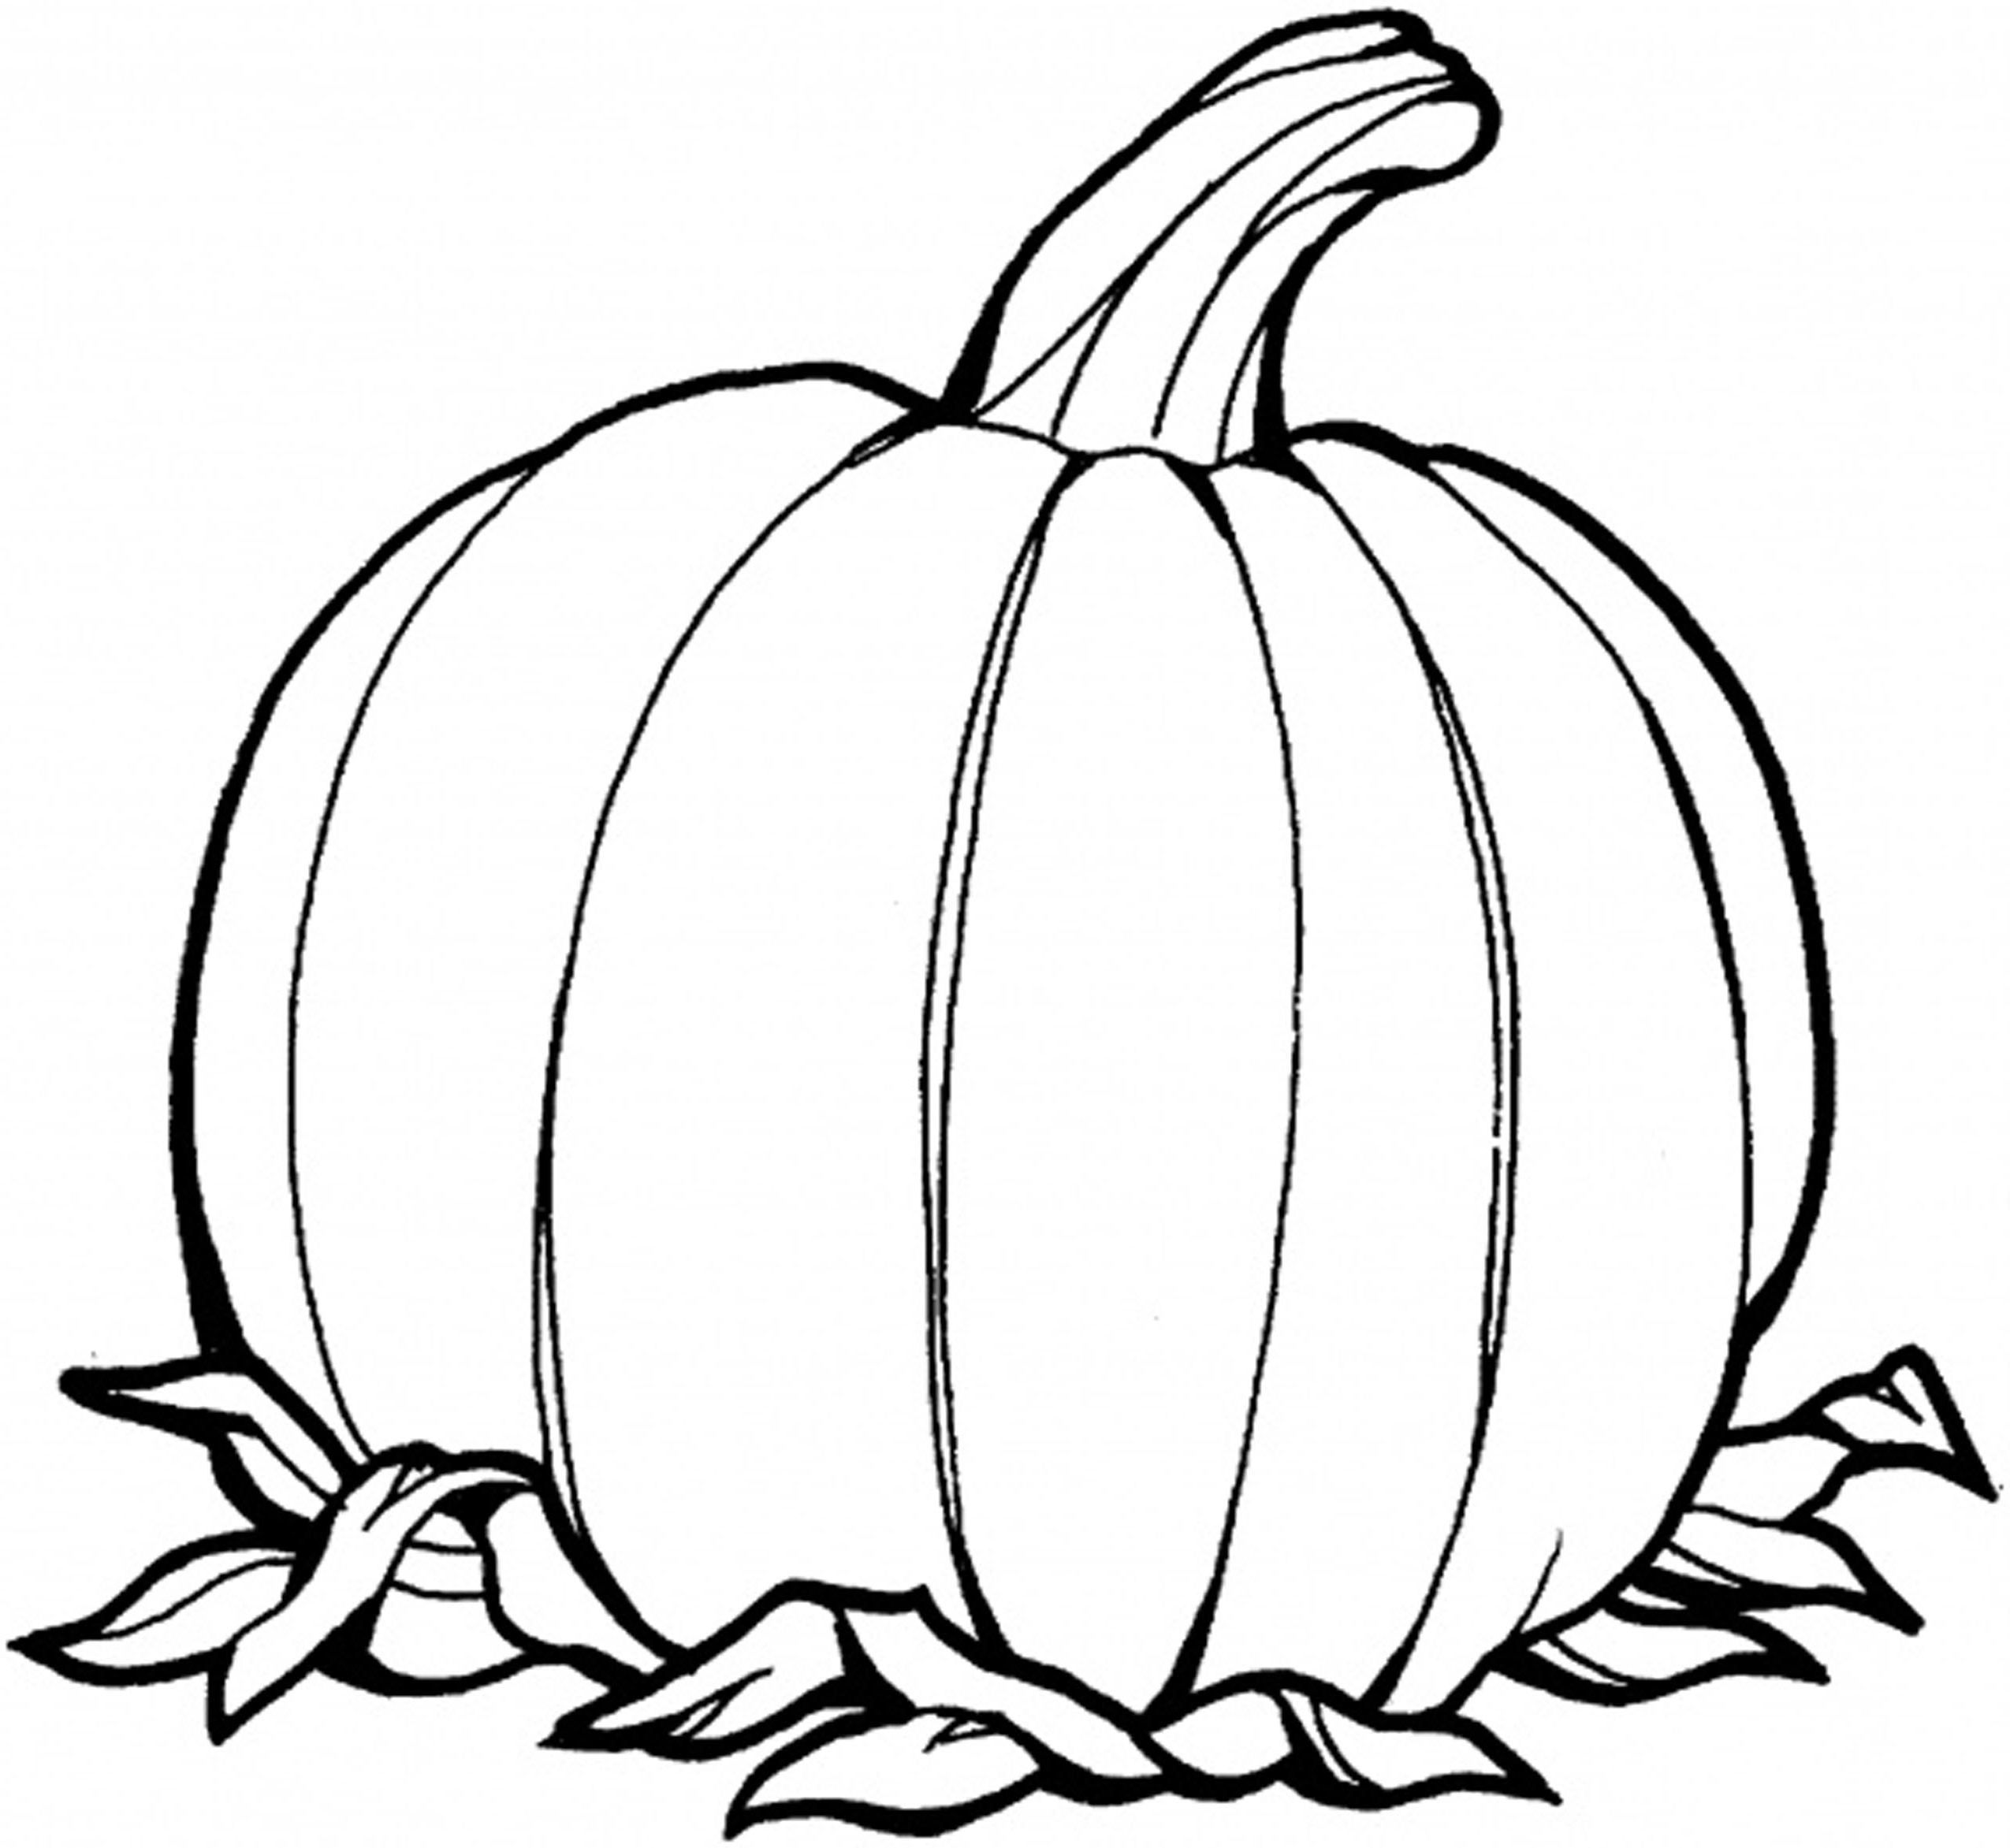 pumpkin colouring pictures free printable pumpkin coloring pages for kids cool2bkids colouring pumpkin pictures